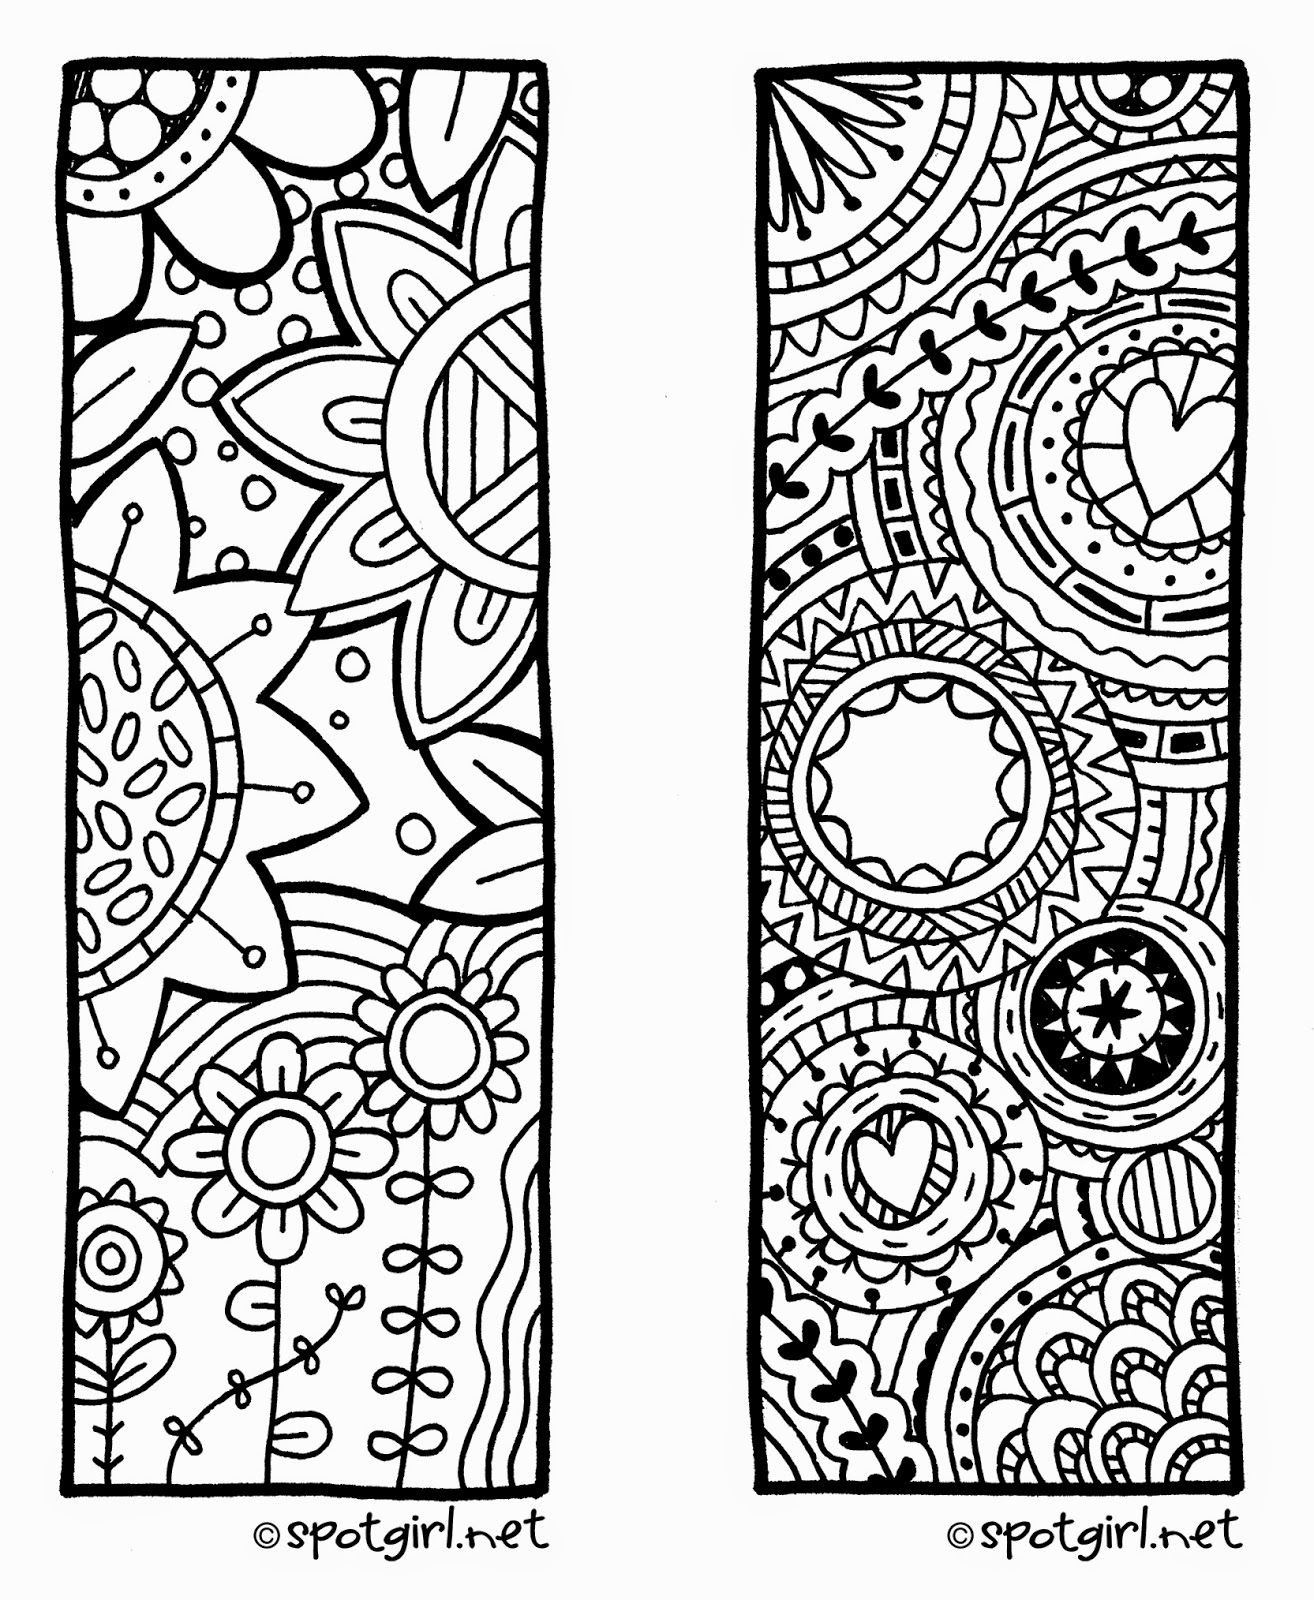 Coloring Pages: Marvelous Coloring Bookmarks For Kids Picture - Free Printable Bookmarks To Color